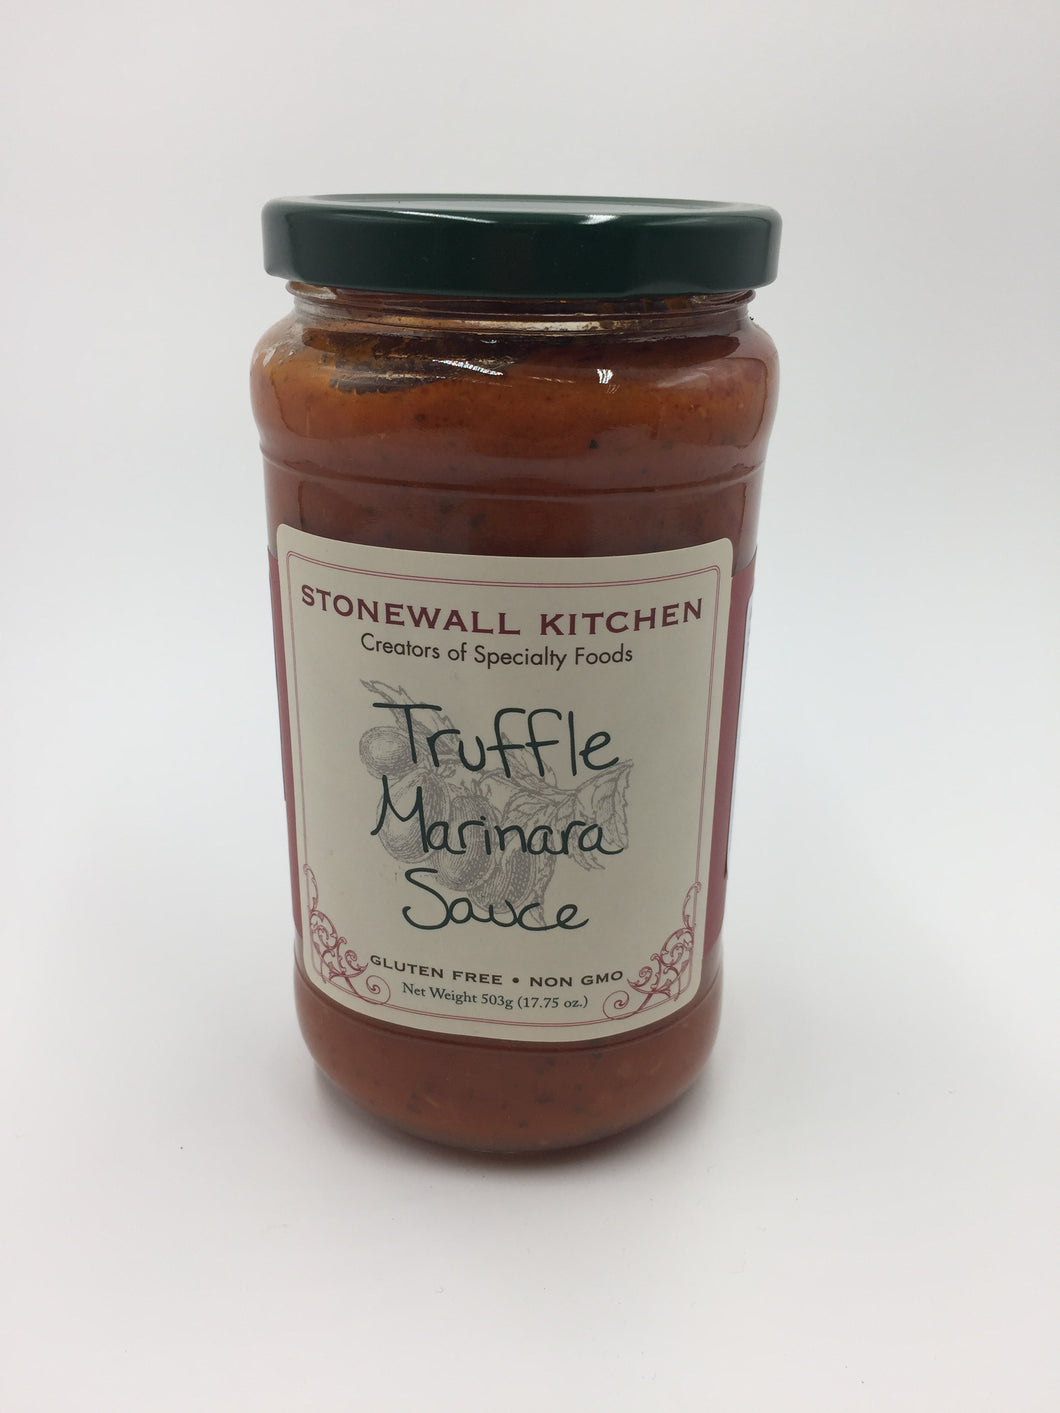 Stonewall Kitchen Truffle Marinara Sauce